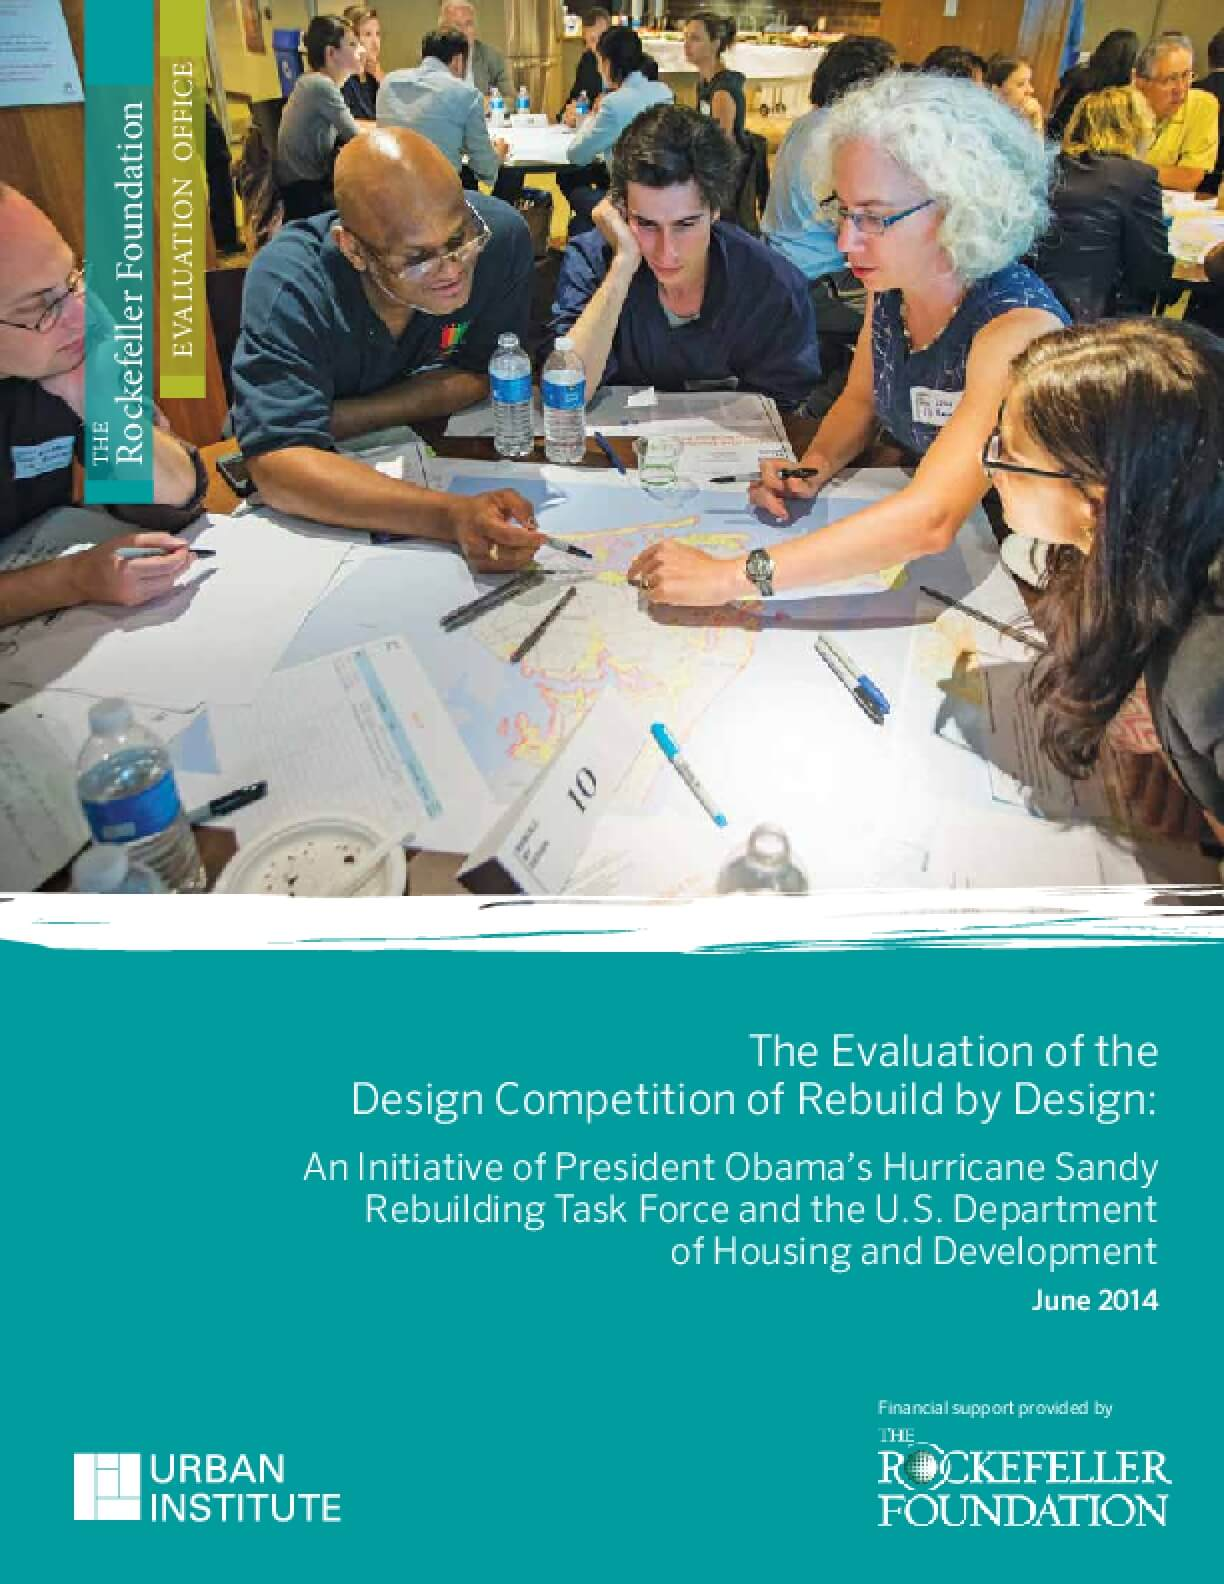 The Evaluation of the Design Competition of Rebuild by Design: An Initiative of President Obama's Hurricane Sandy Rebuilding Task Force and the U.S. Department of Housing and Development